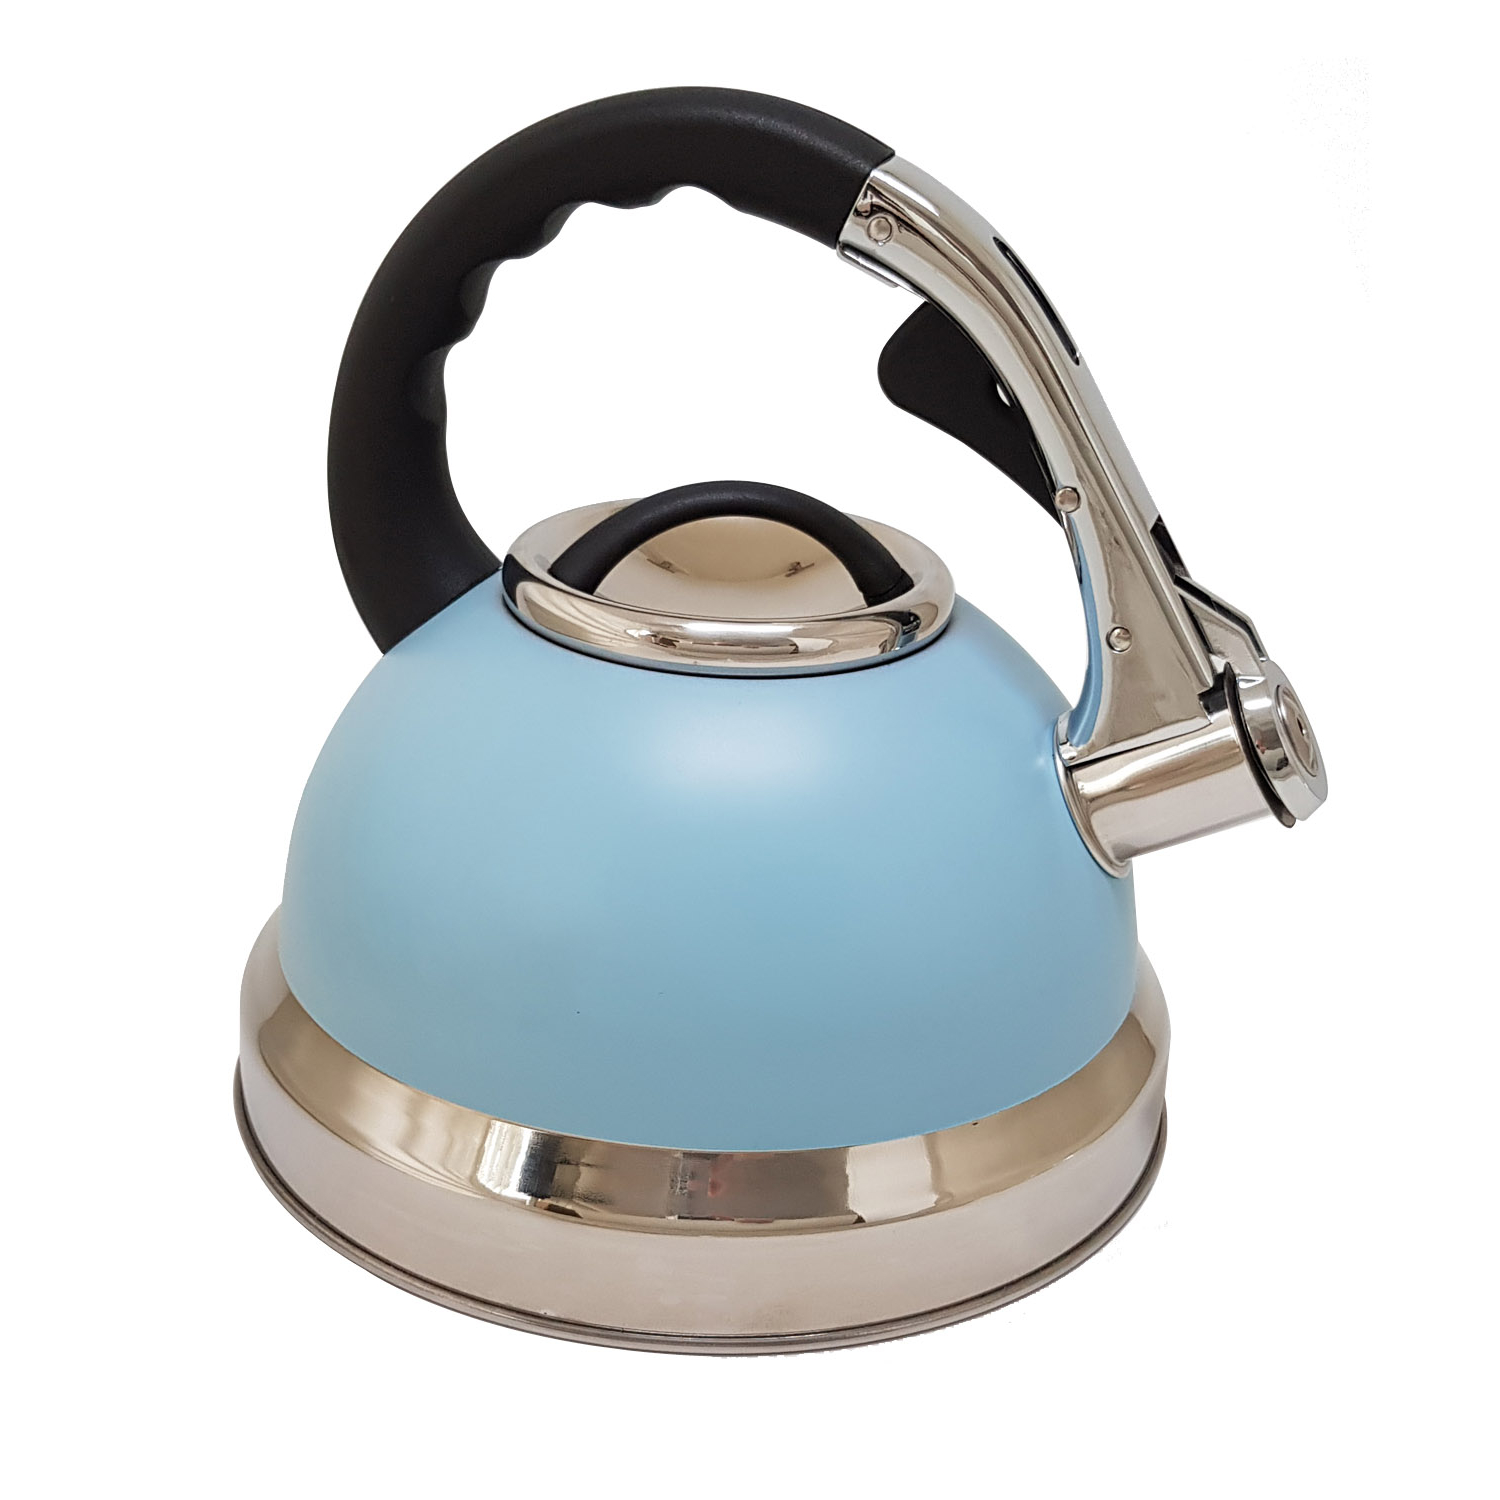 VonShef Kettle Stainless Steel 1.7L Electric 2000W Cordless Tea Jug Gold Rapid